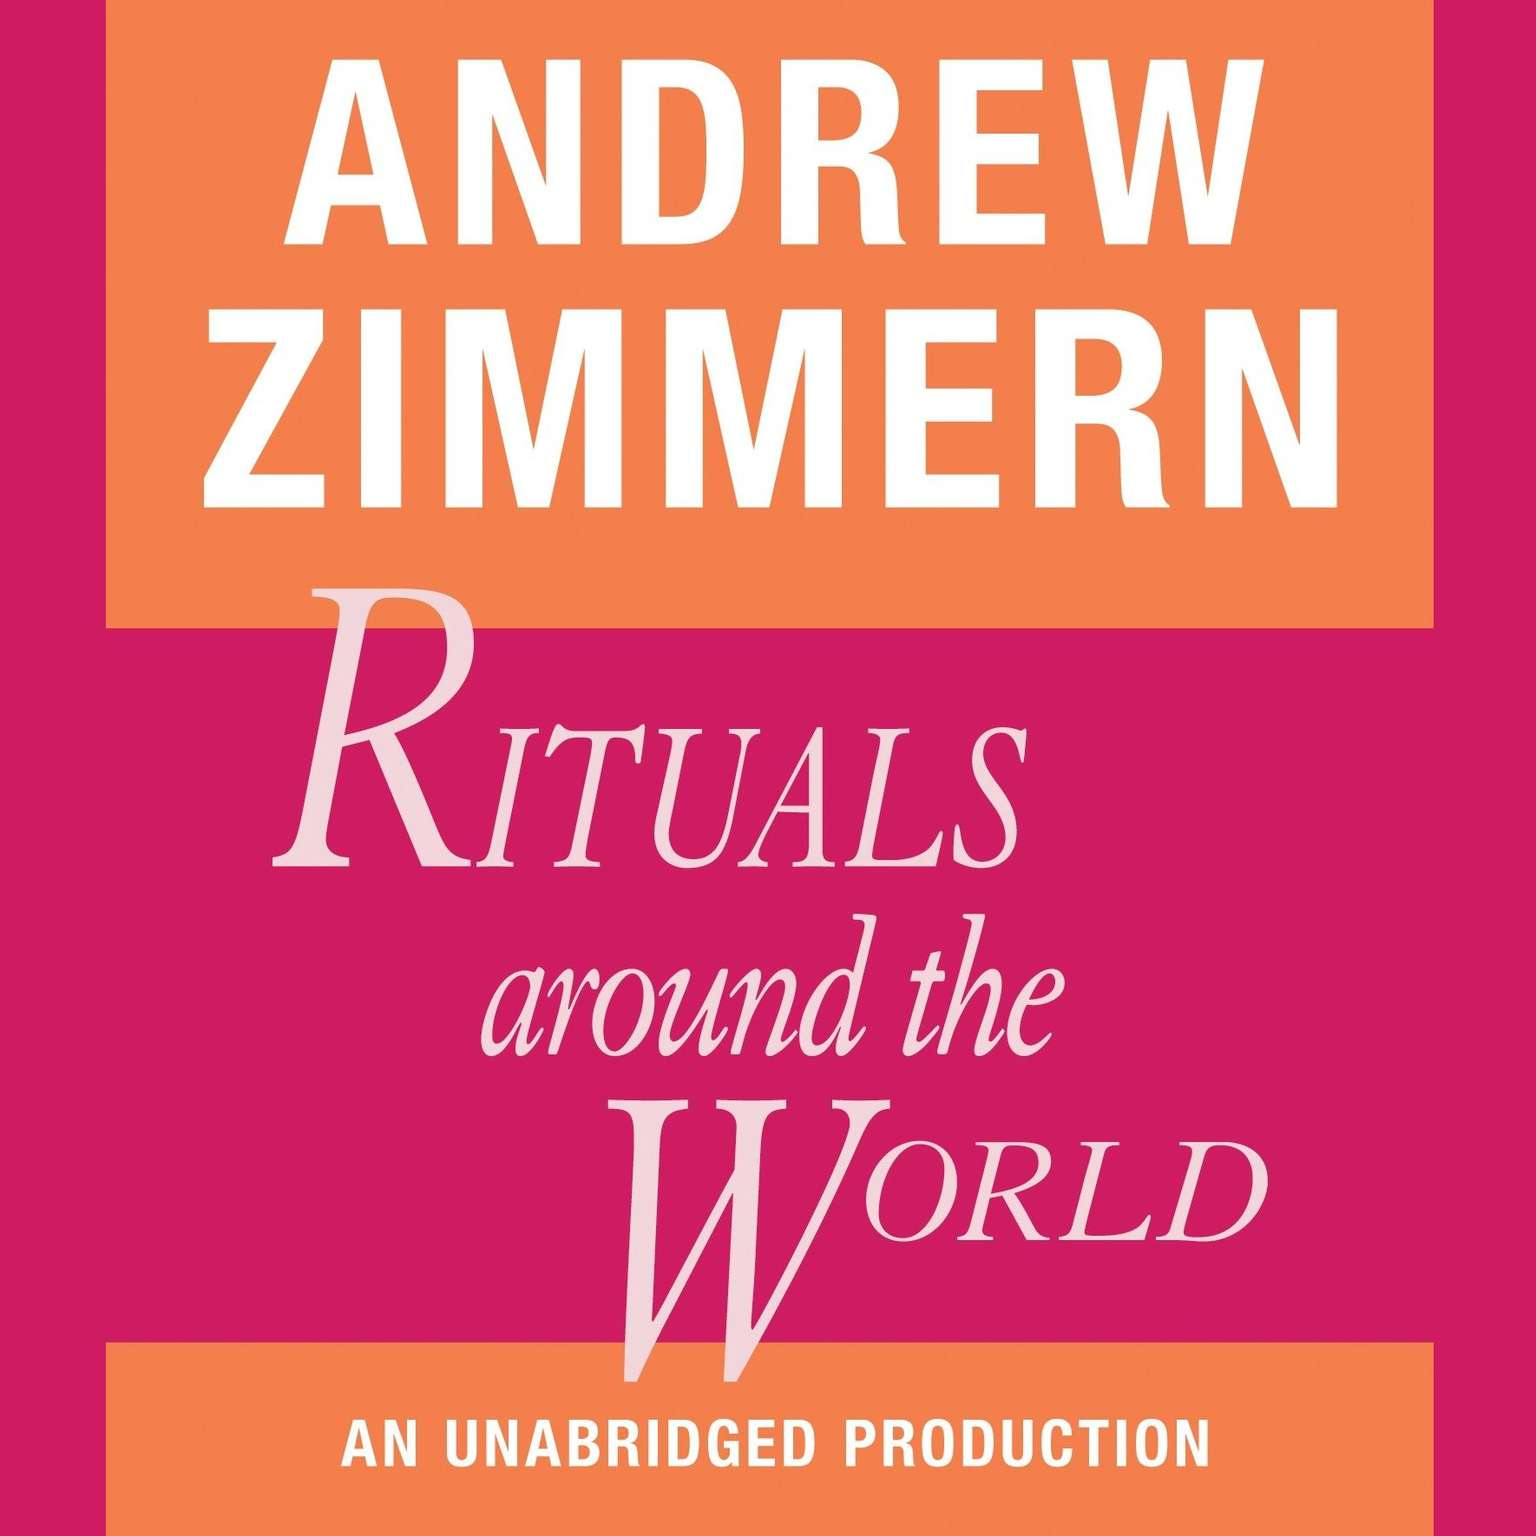 Printable Andrew Zimmern, Rituals Around the World: Chapter 18 from THE BIZARRE TRUTH Audiobook Cover Art